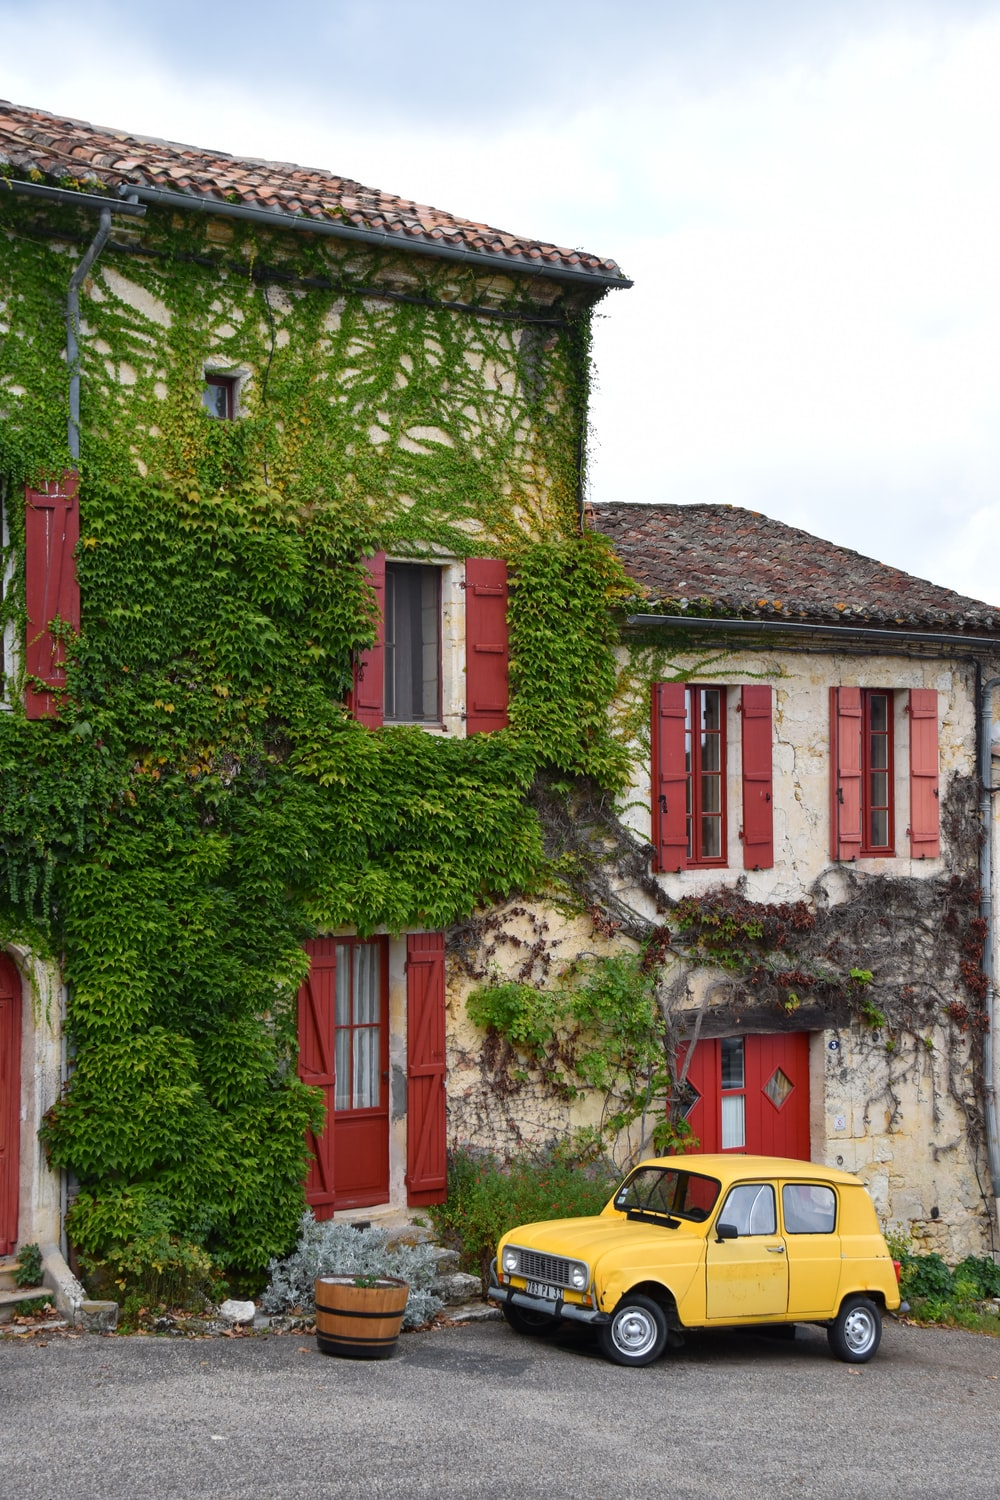 yellow car parked beside red and white concrete building